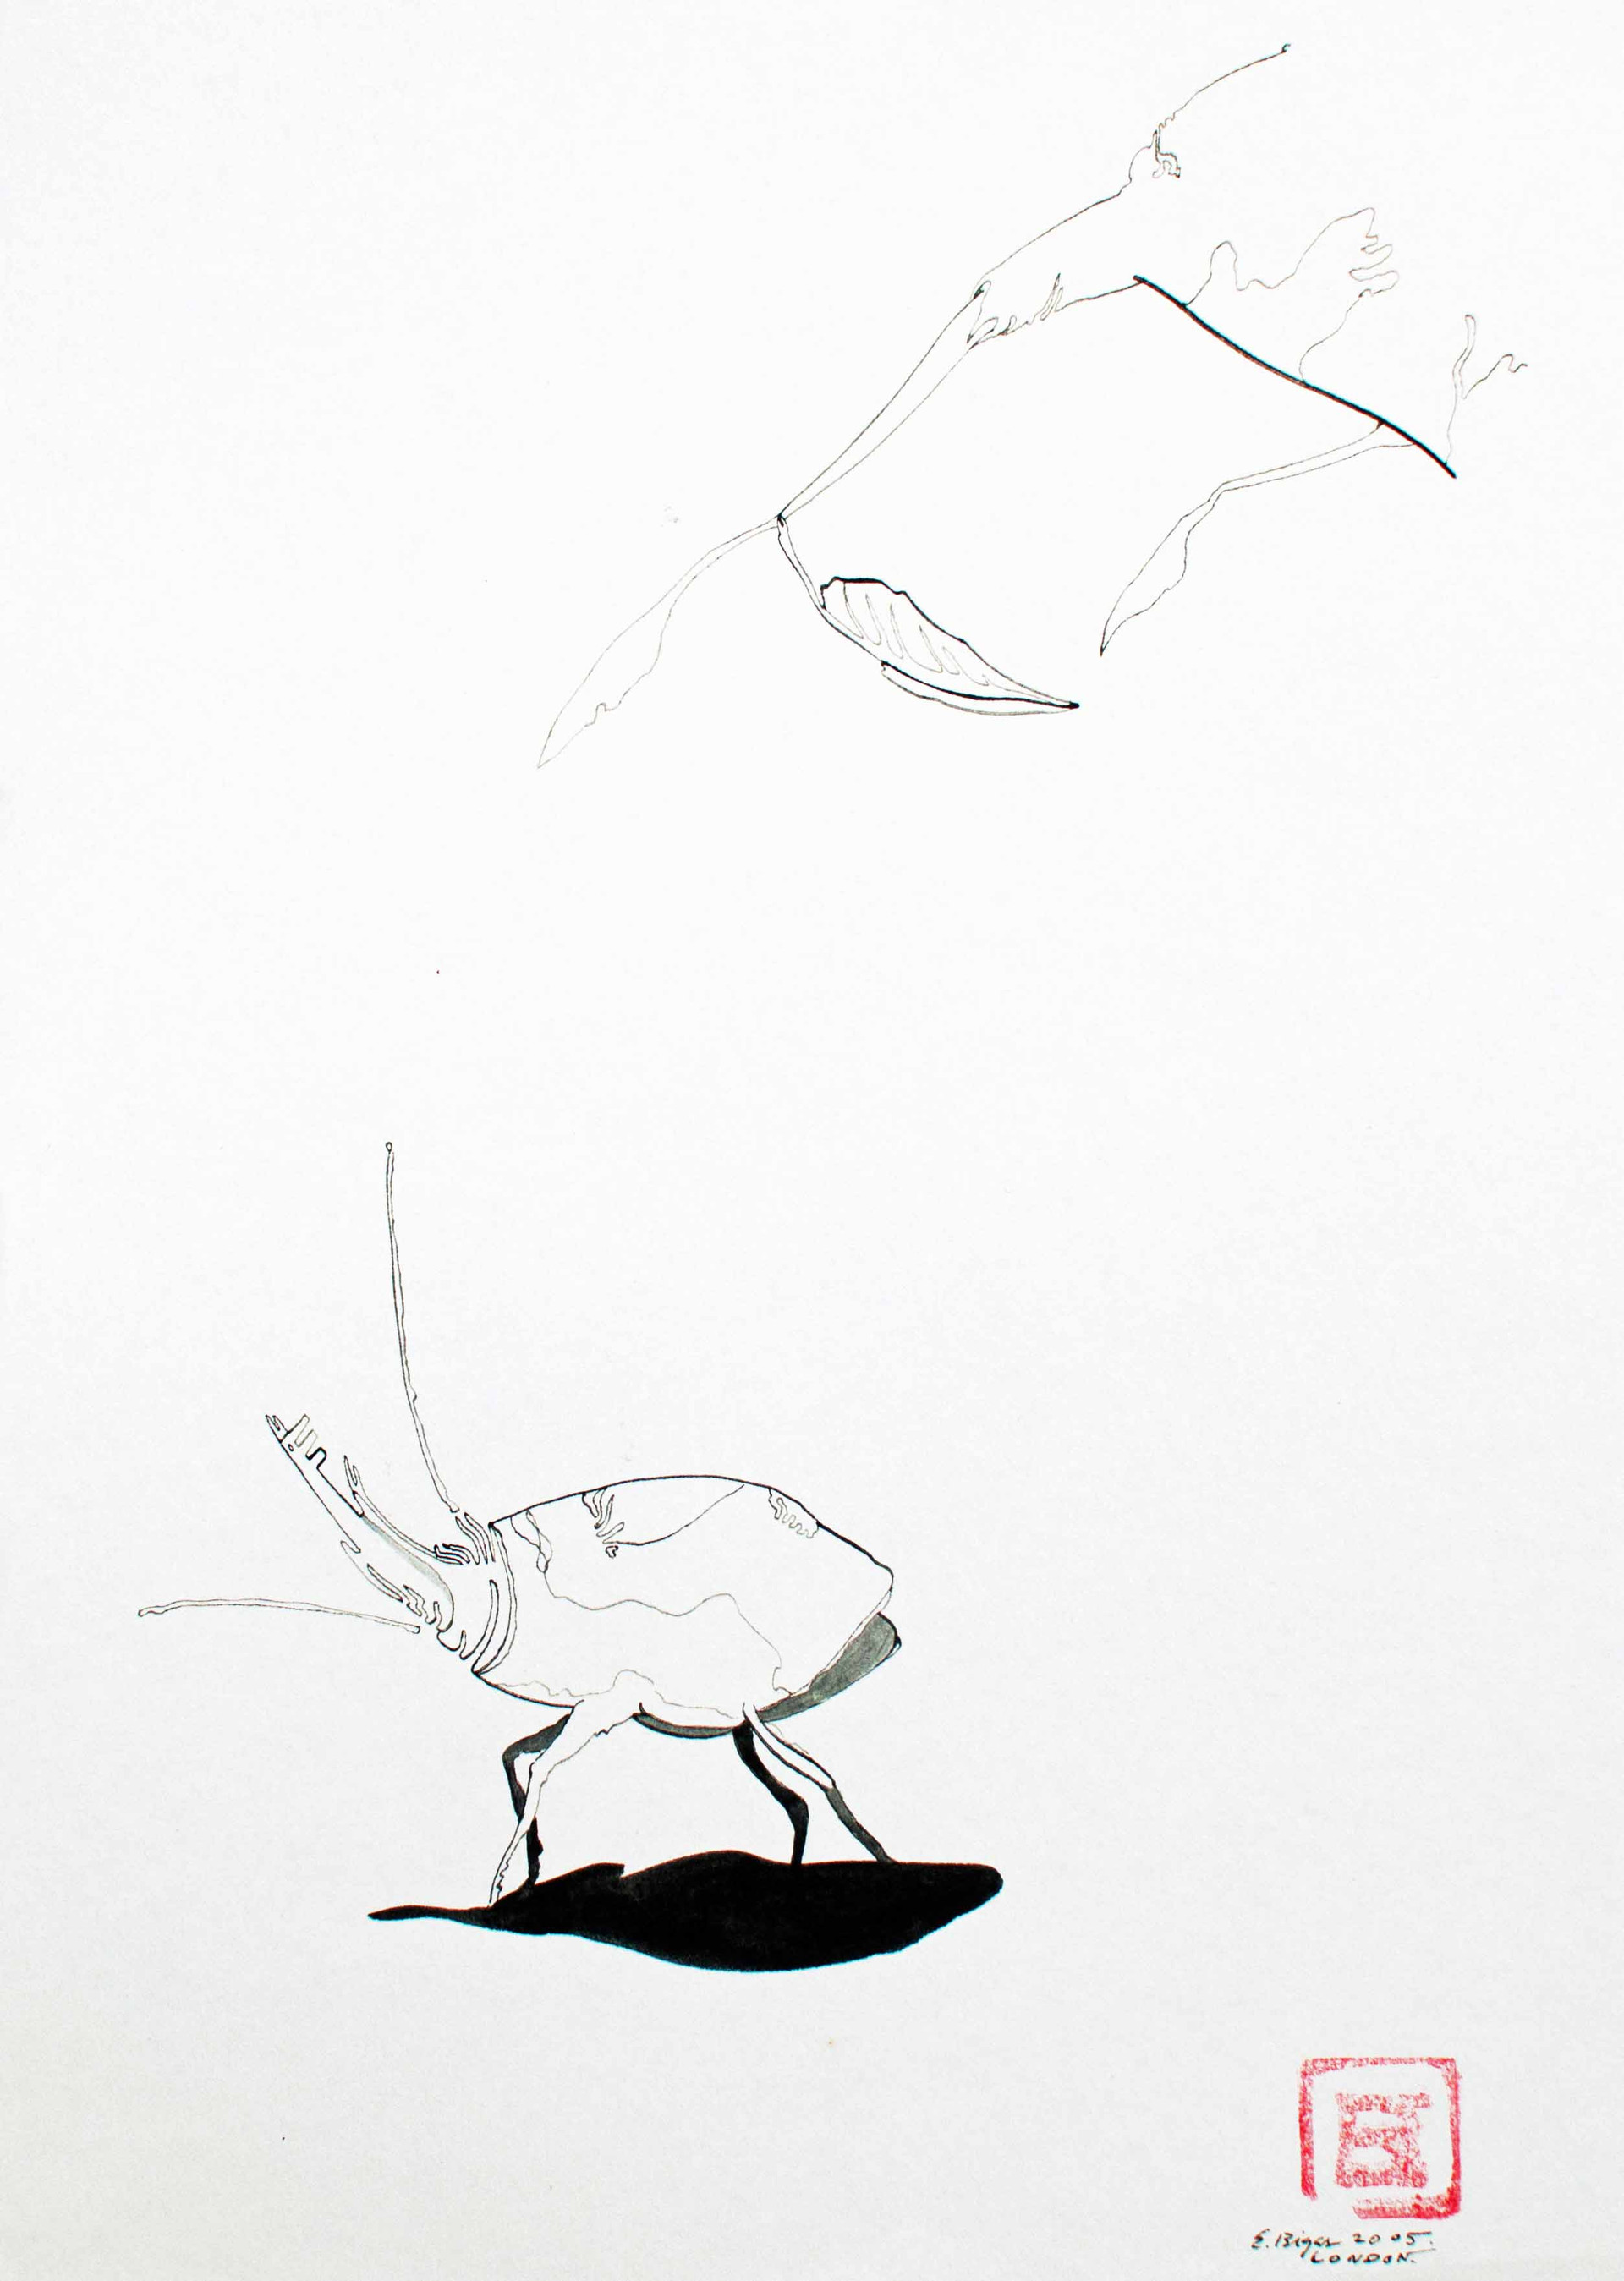 Untitled 2005 21x29'5cm. Ink on paper